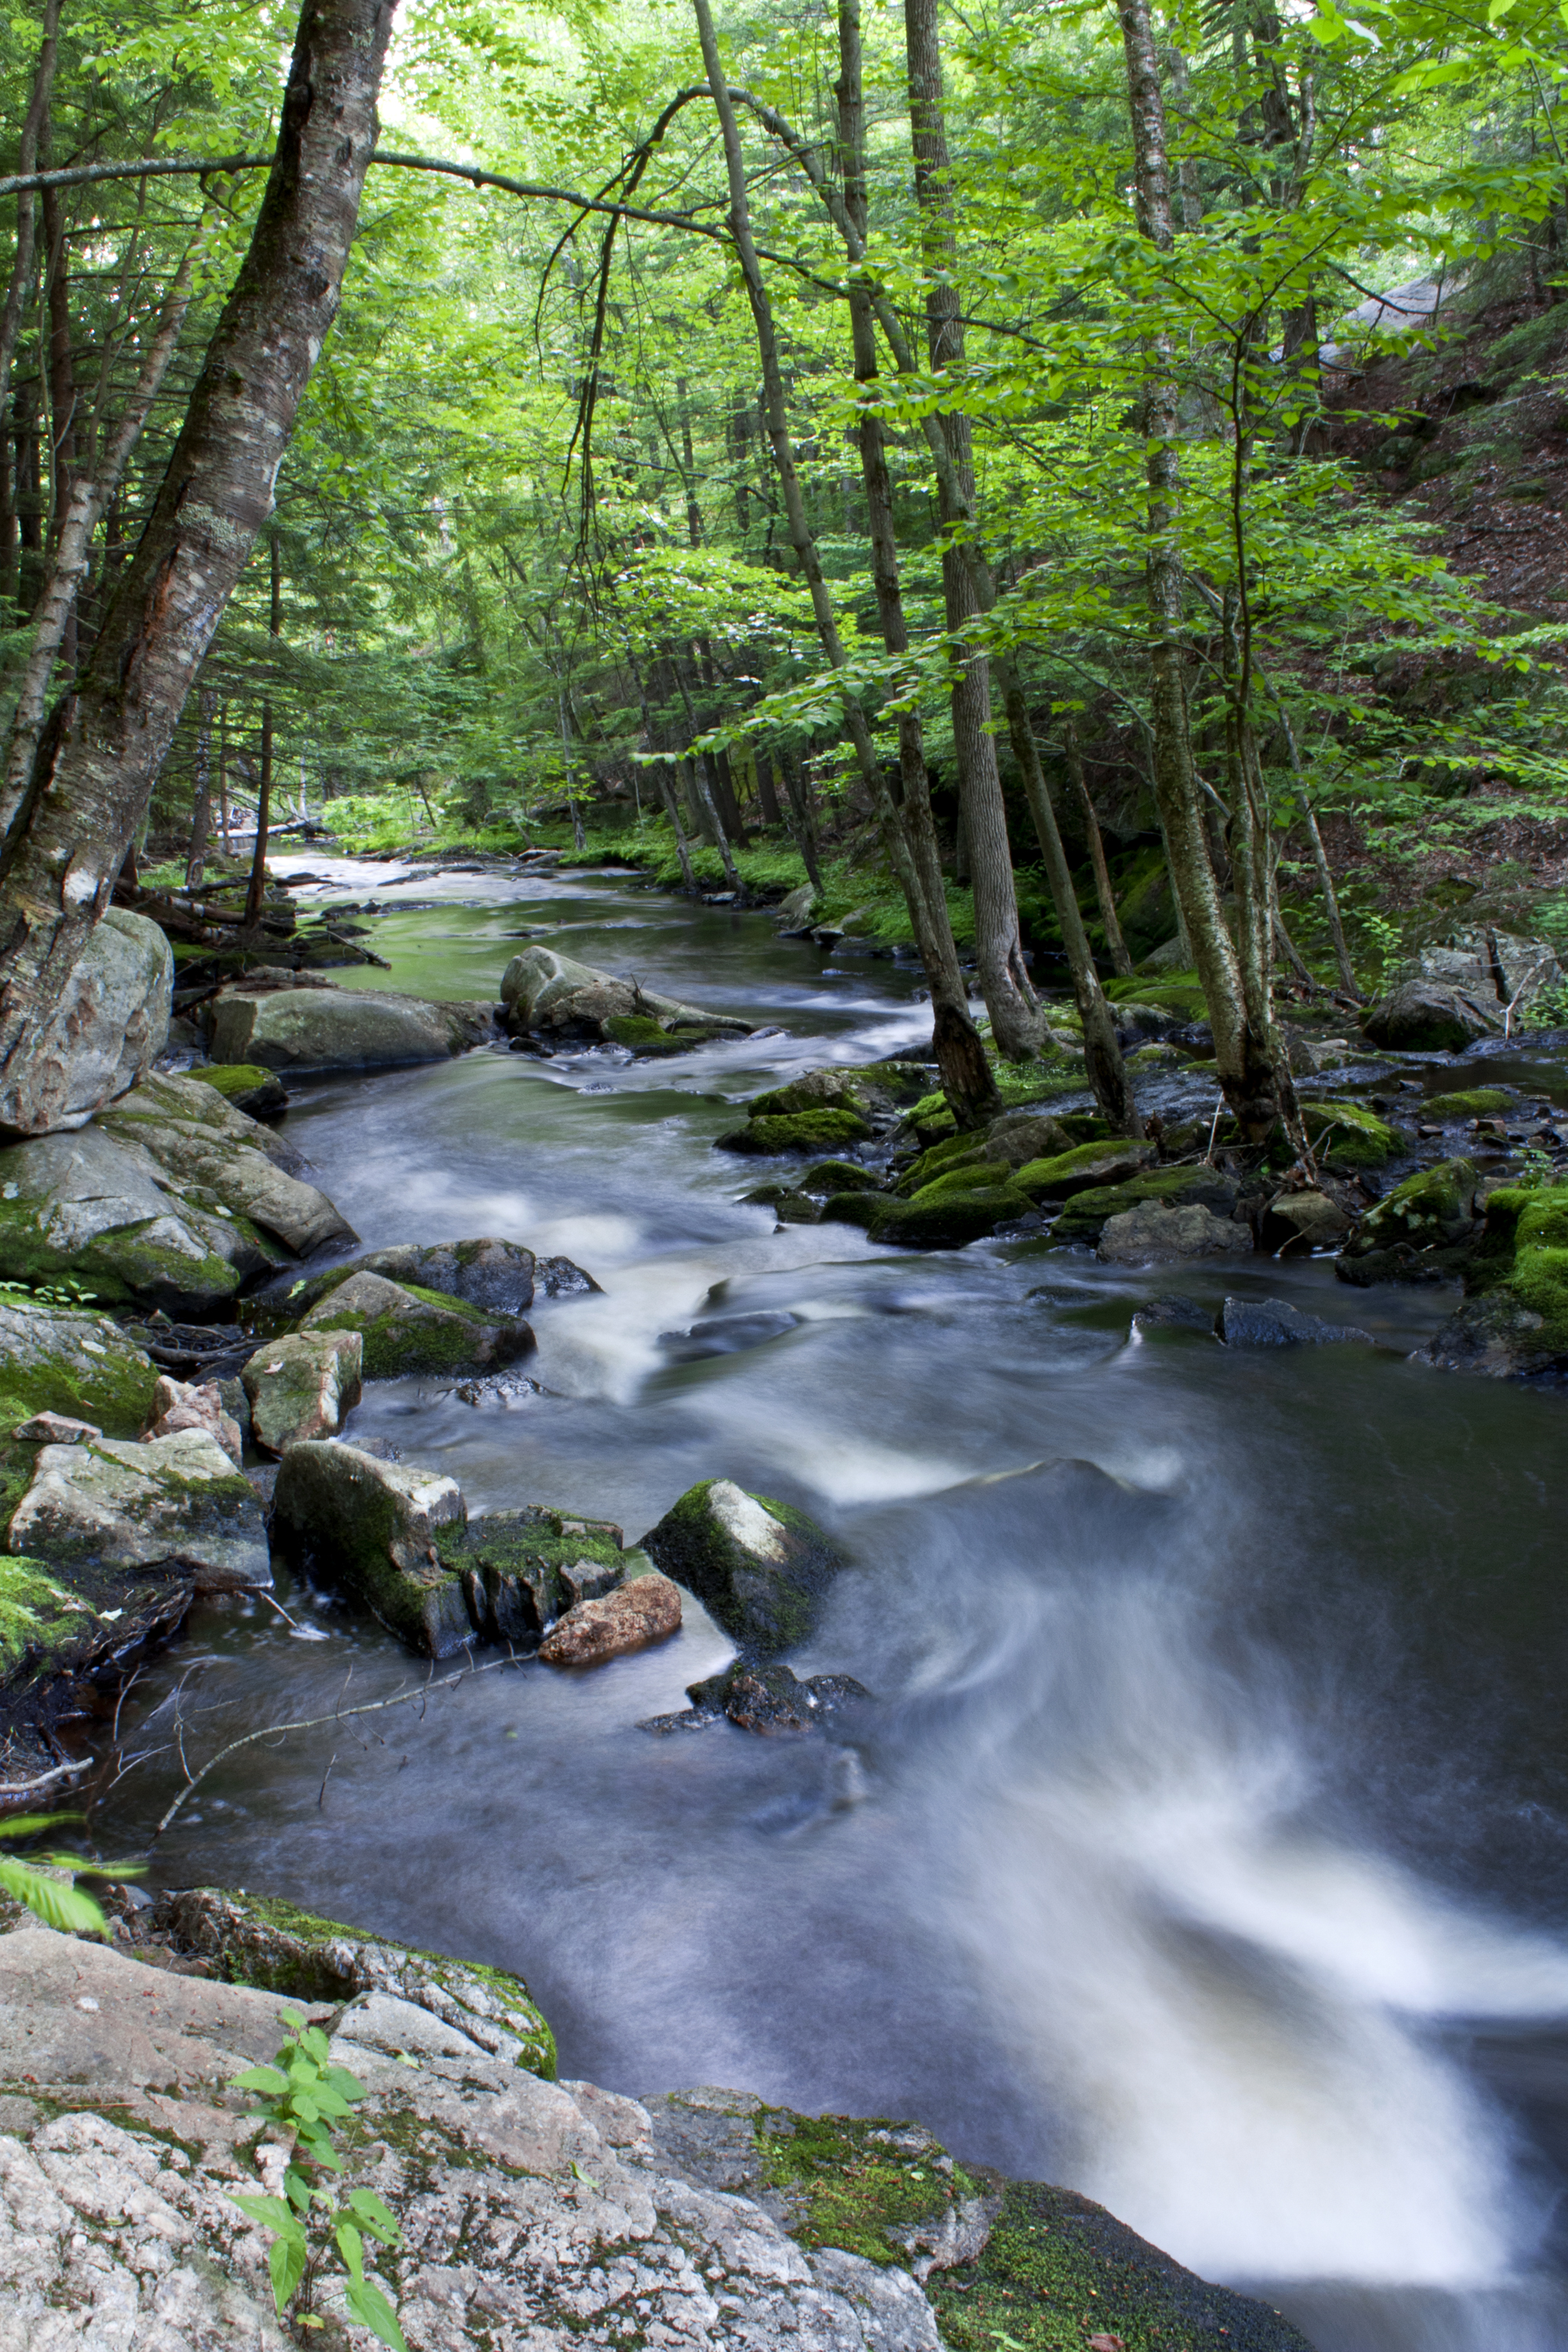 Creek in forest.